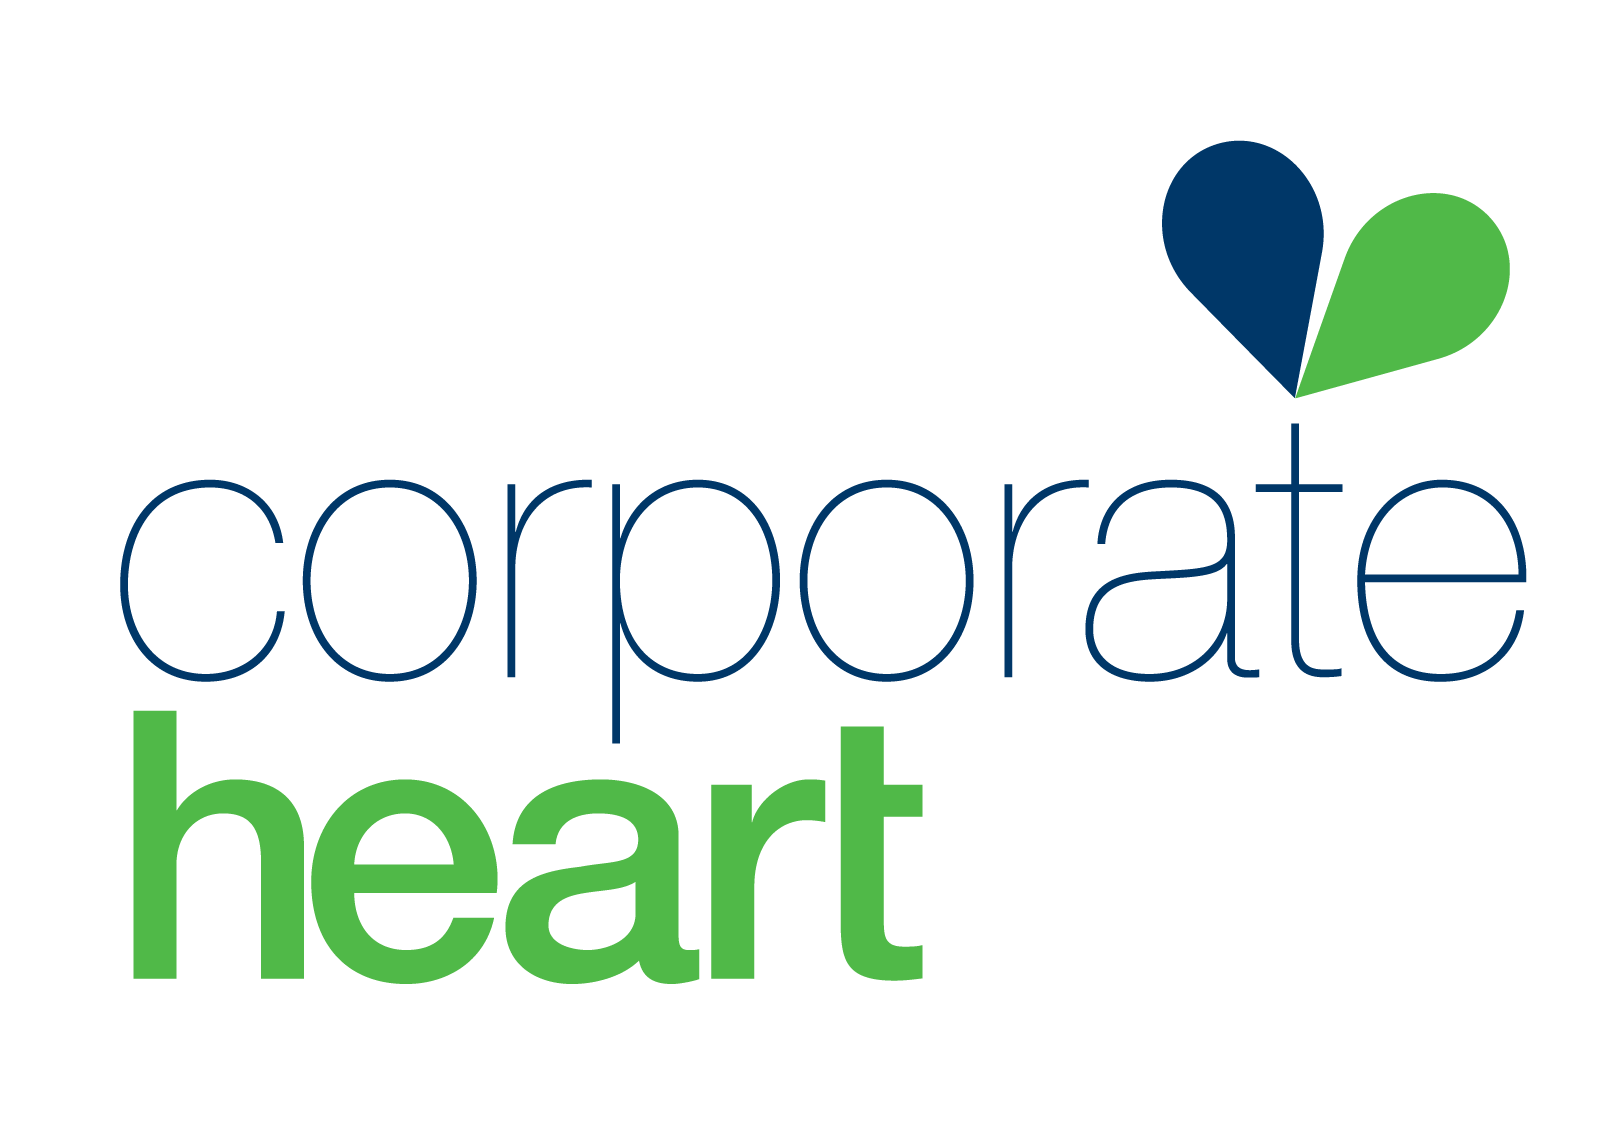 Corporate_Heart_logo_002